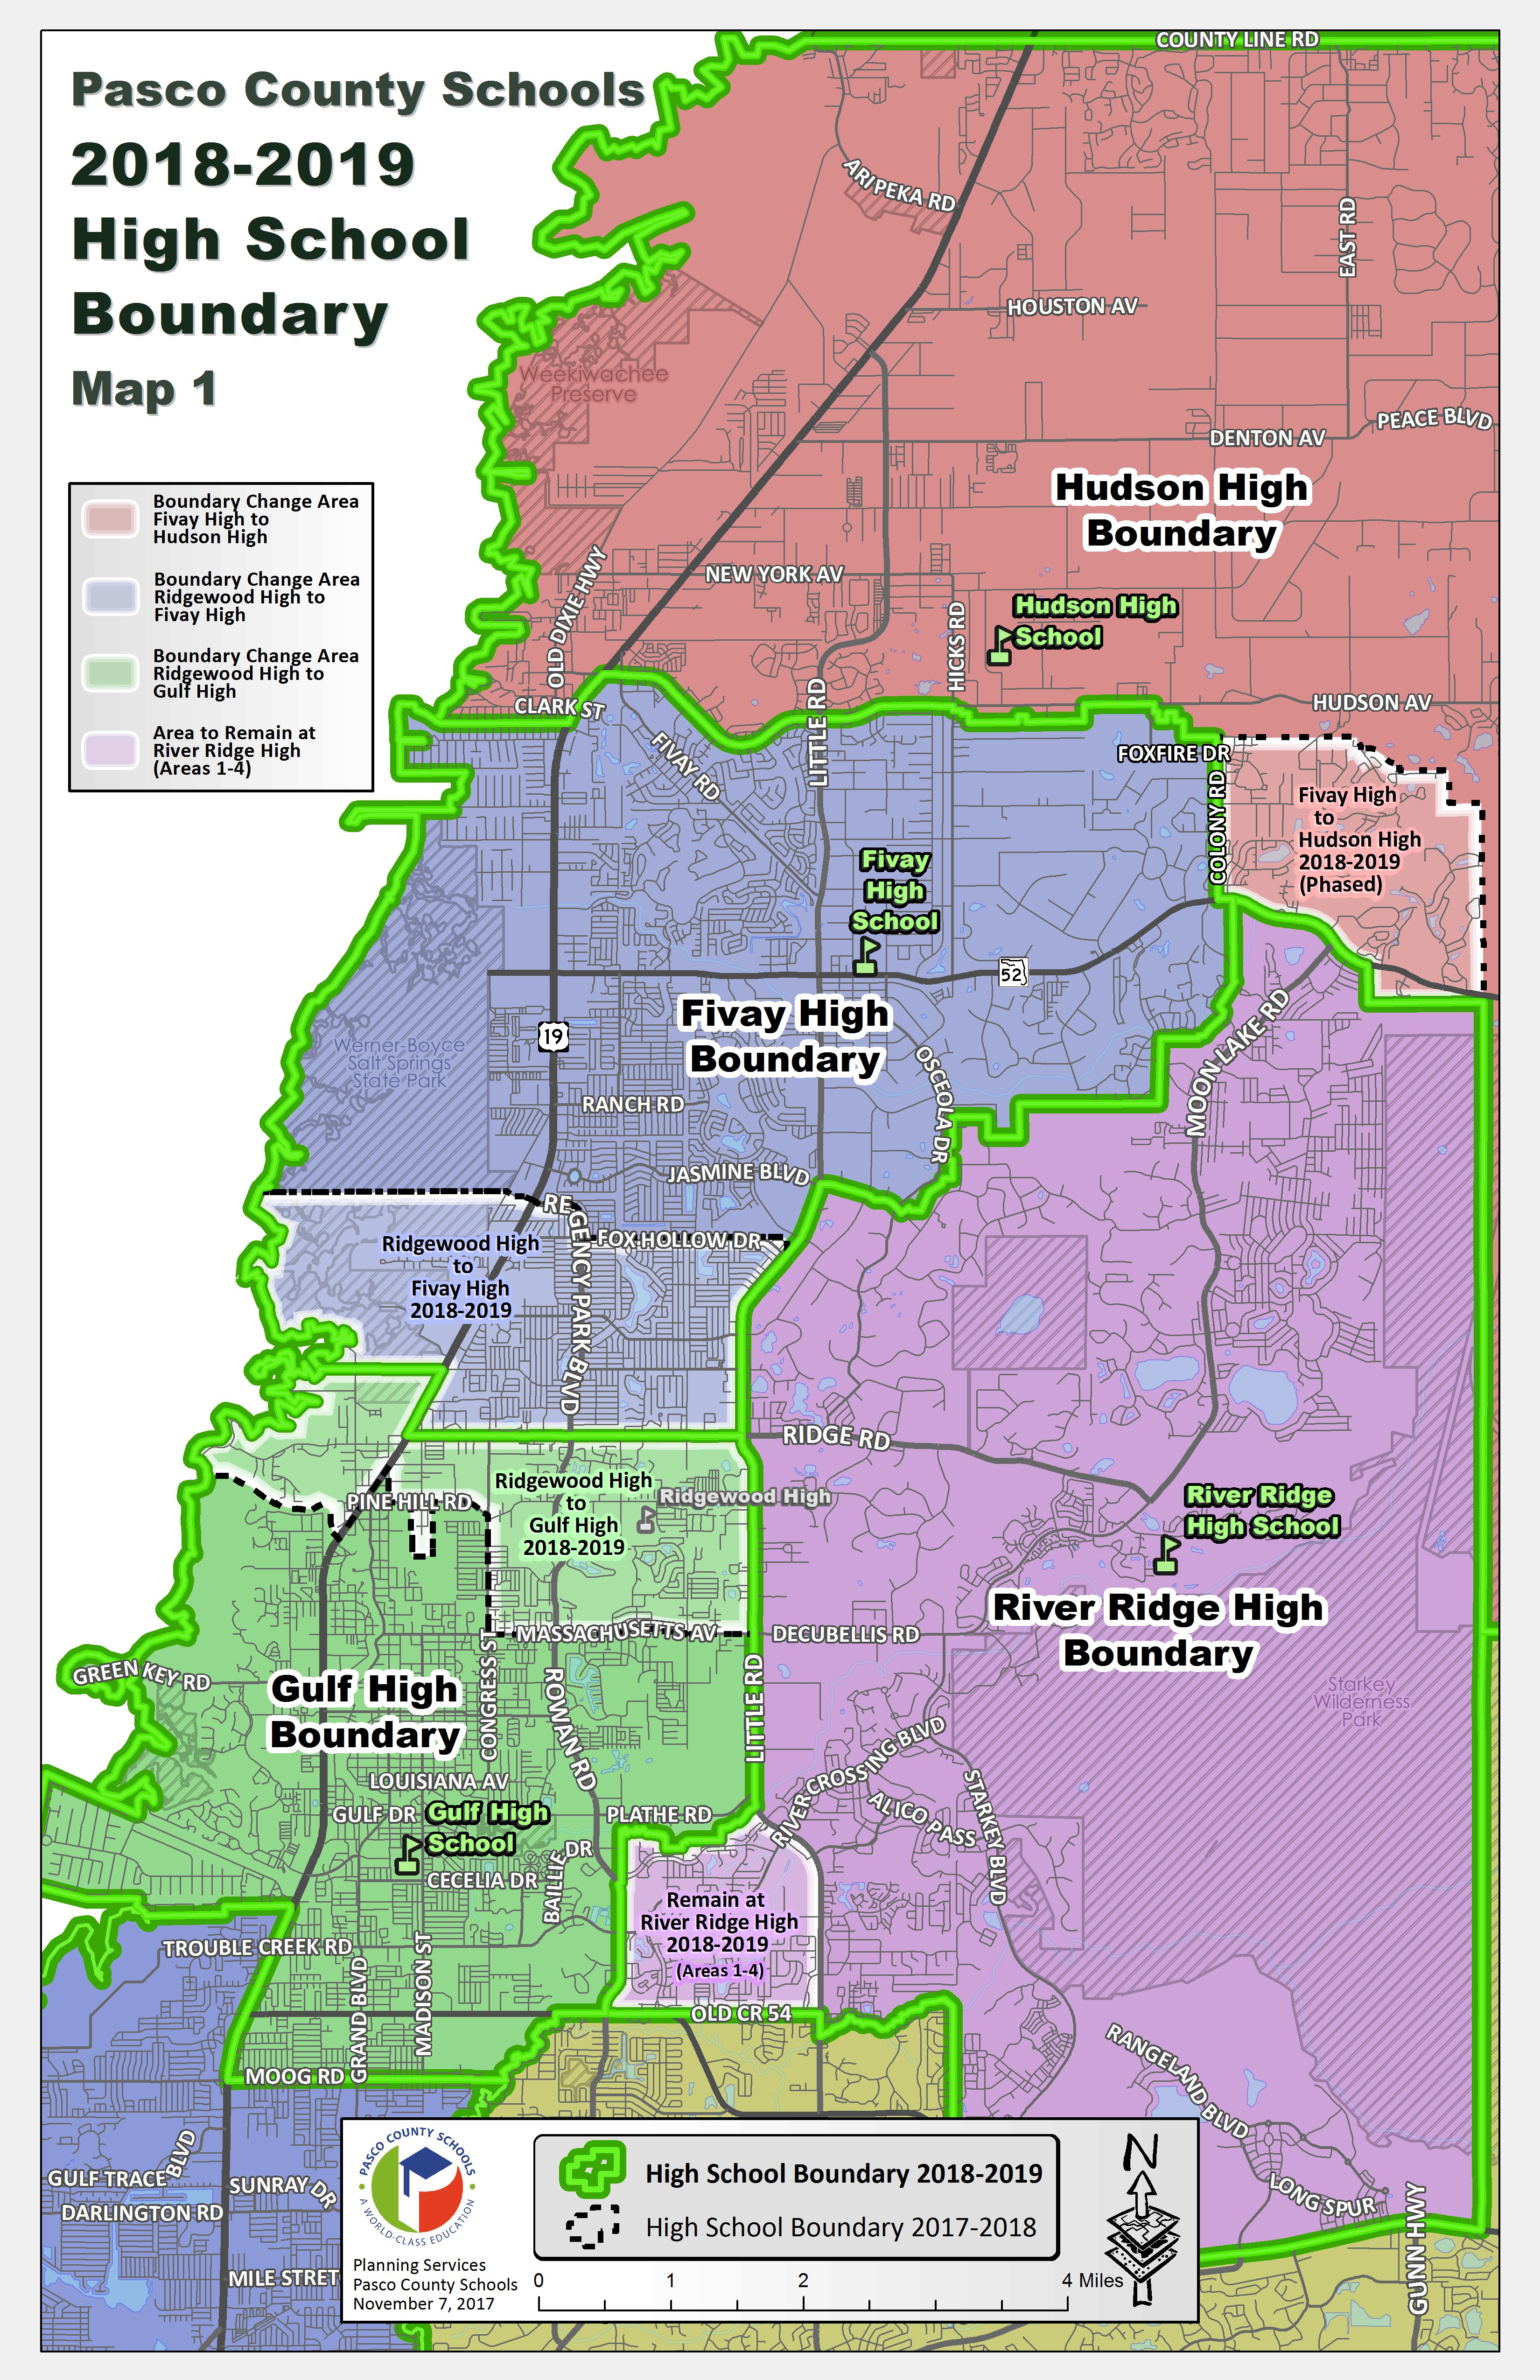 Pasco County Schools - 1819 map of us